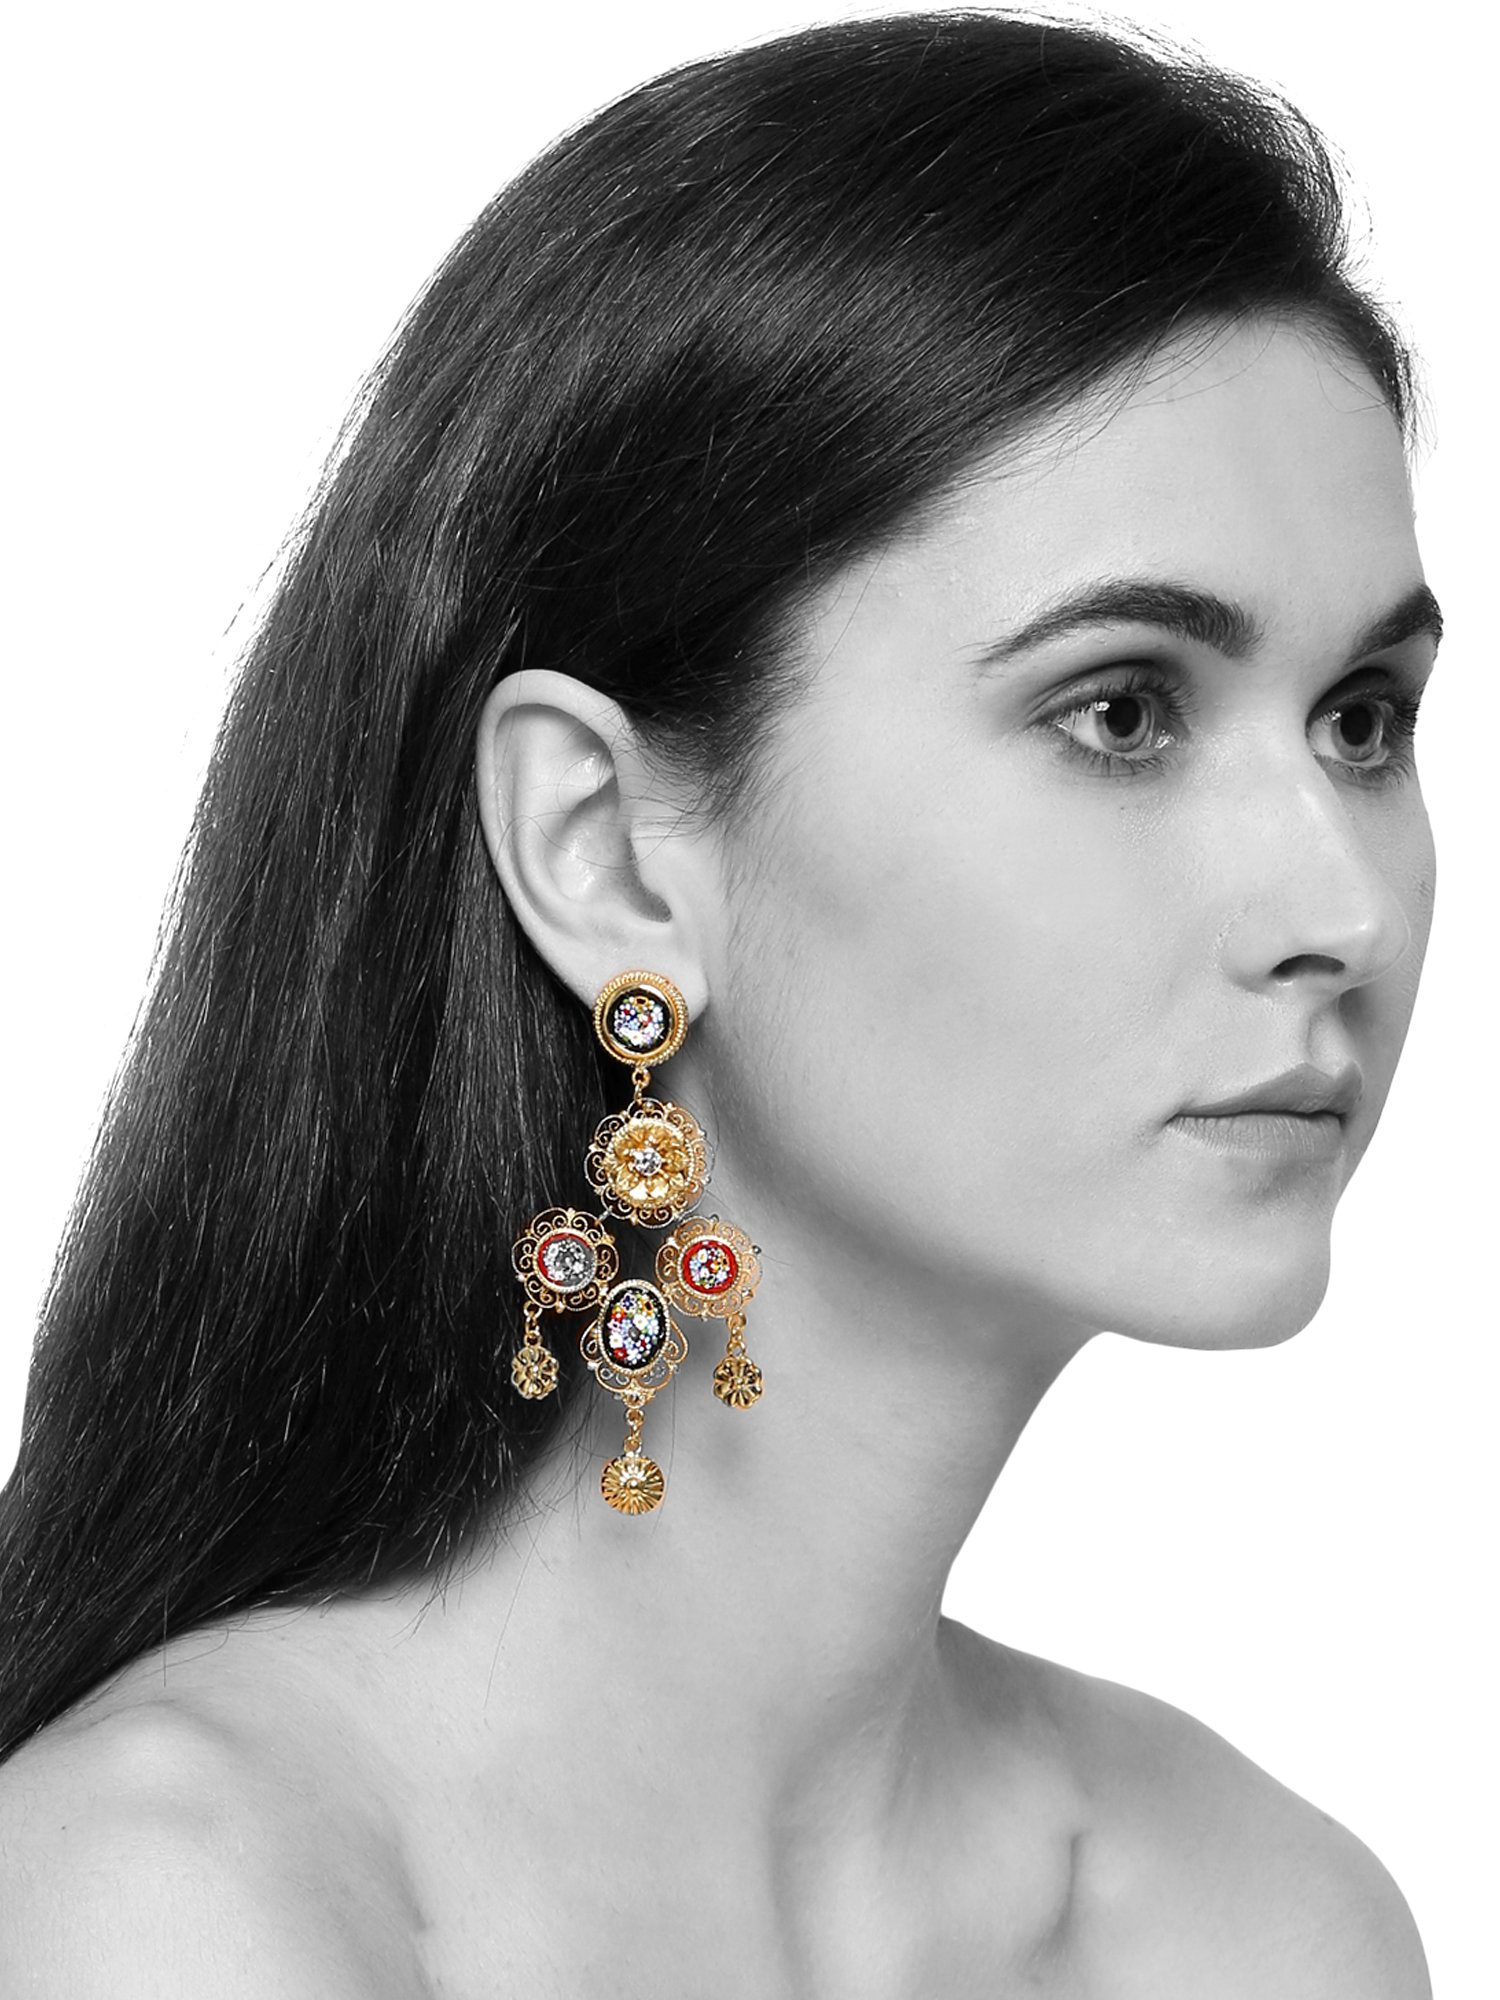 Rawtonica Florentine Gold Earrings